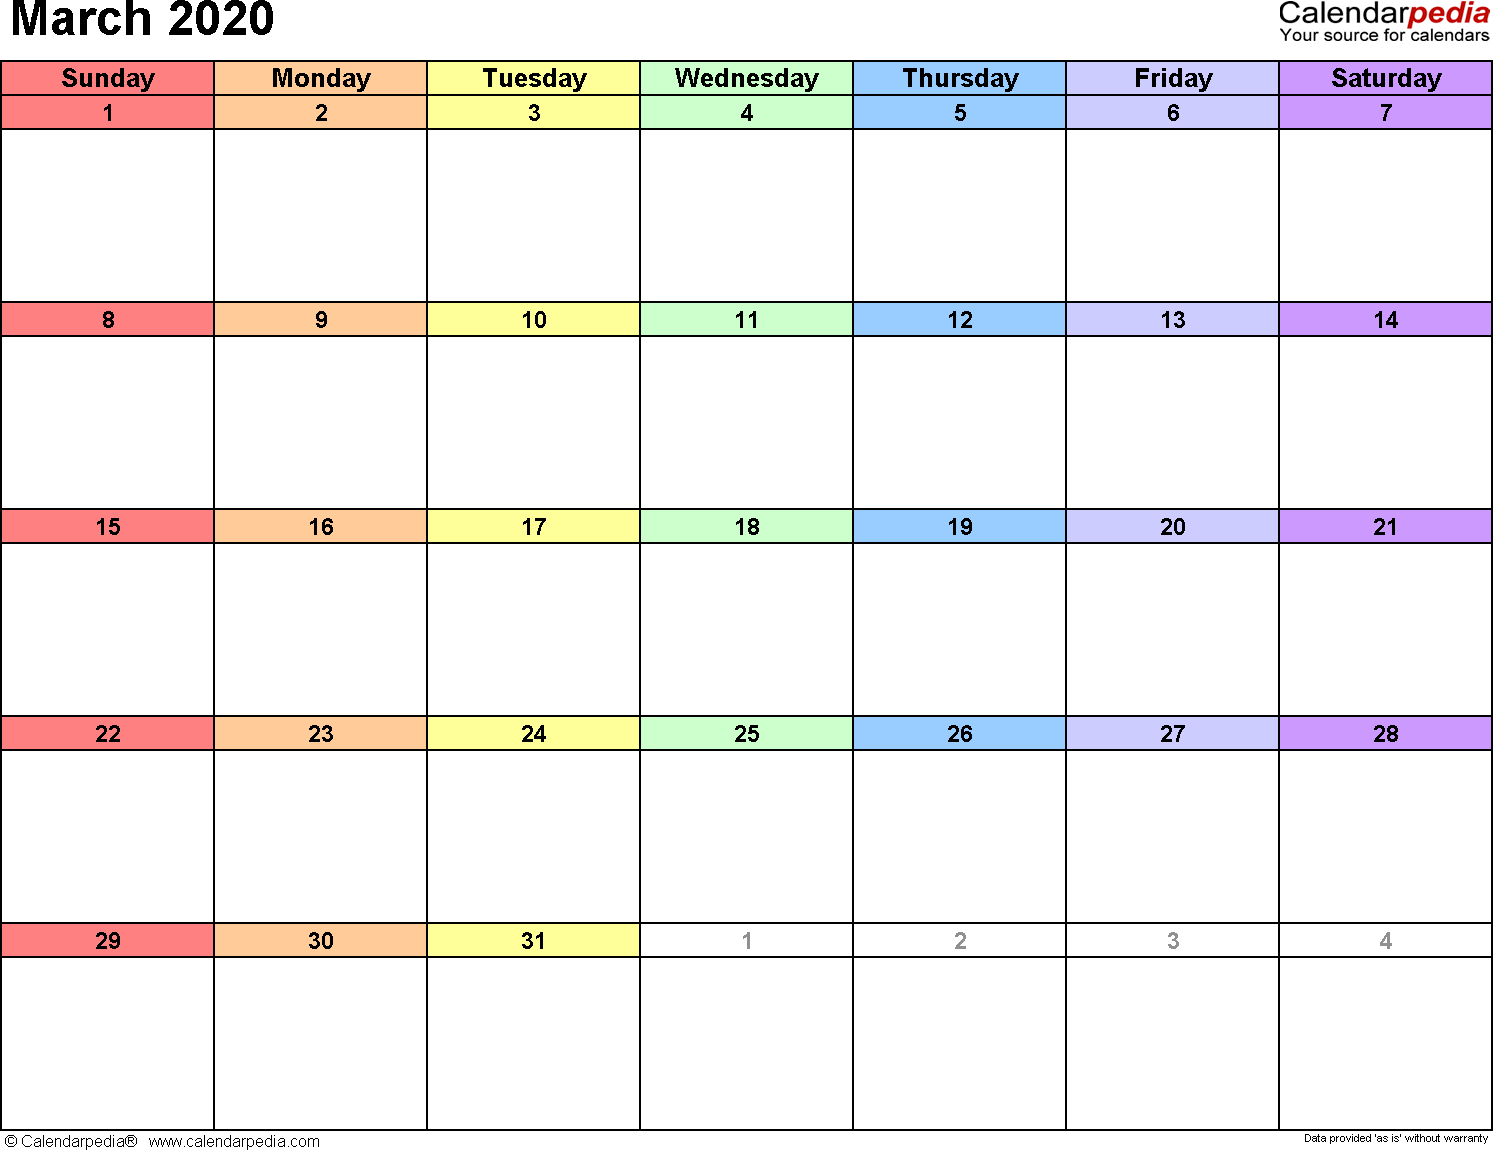 March 2020 Calendars For Word, Excel & Pdf